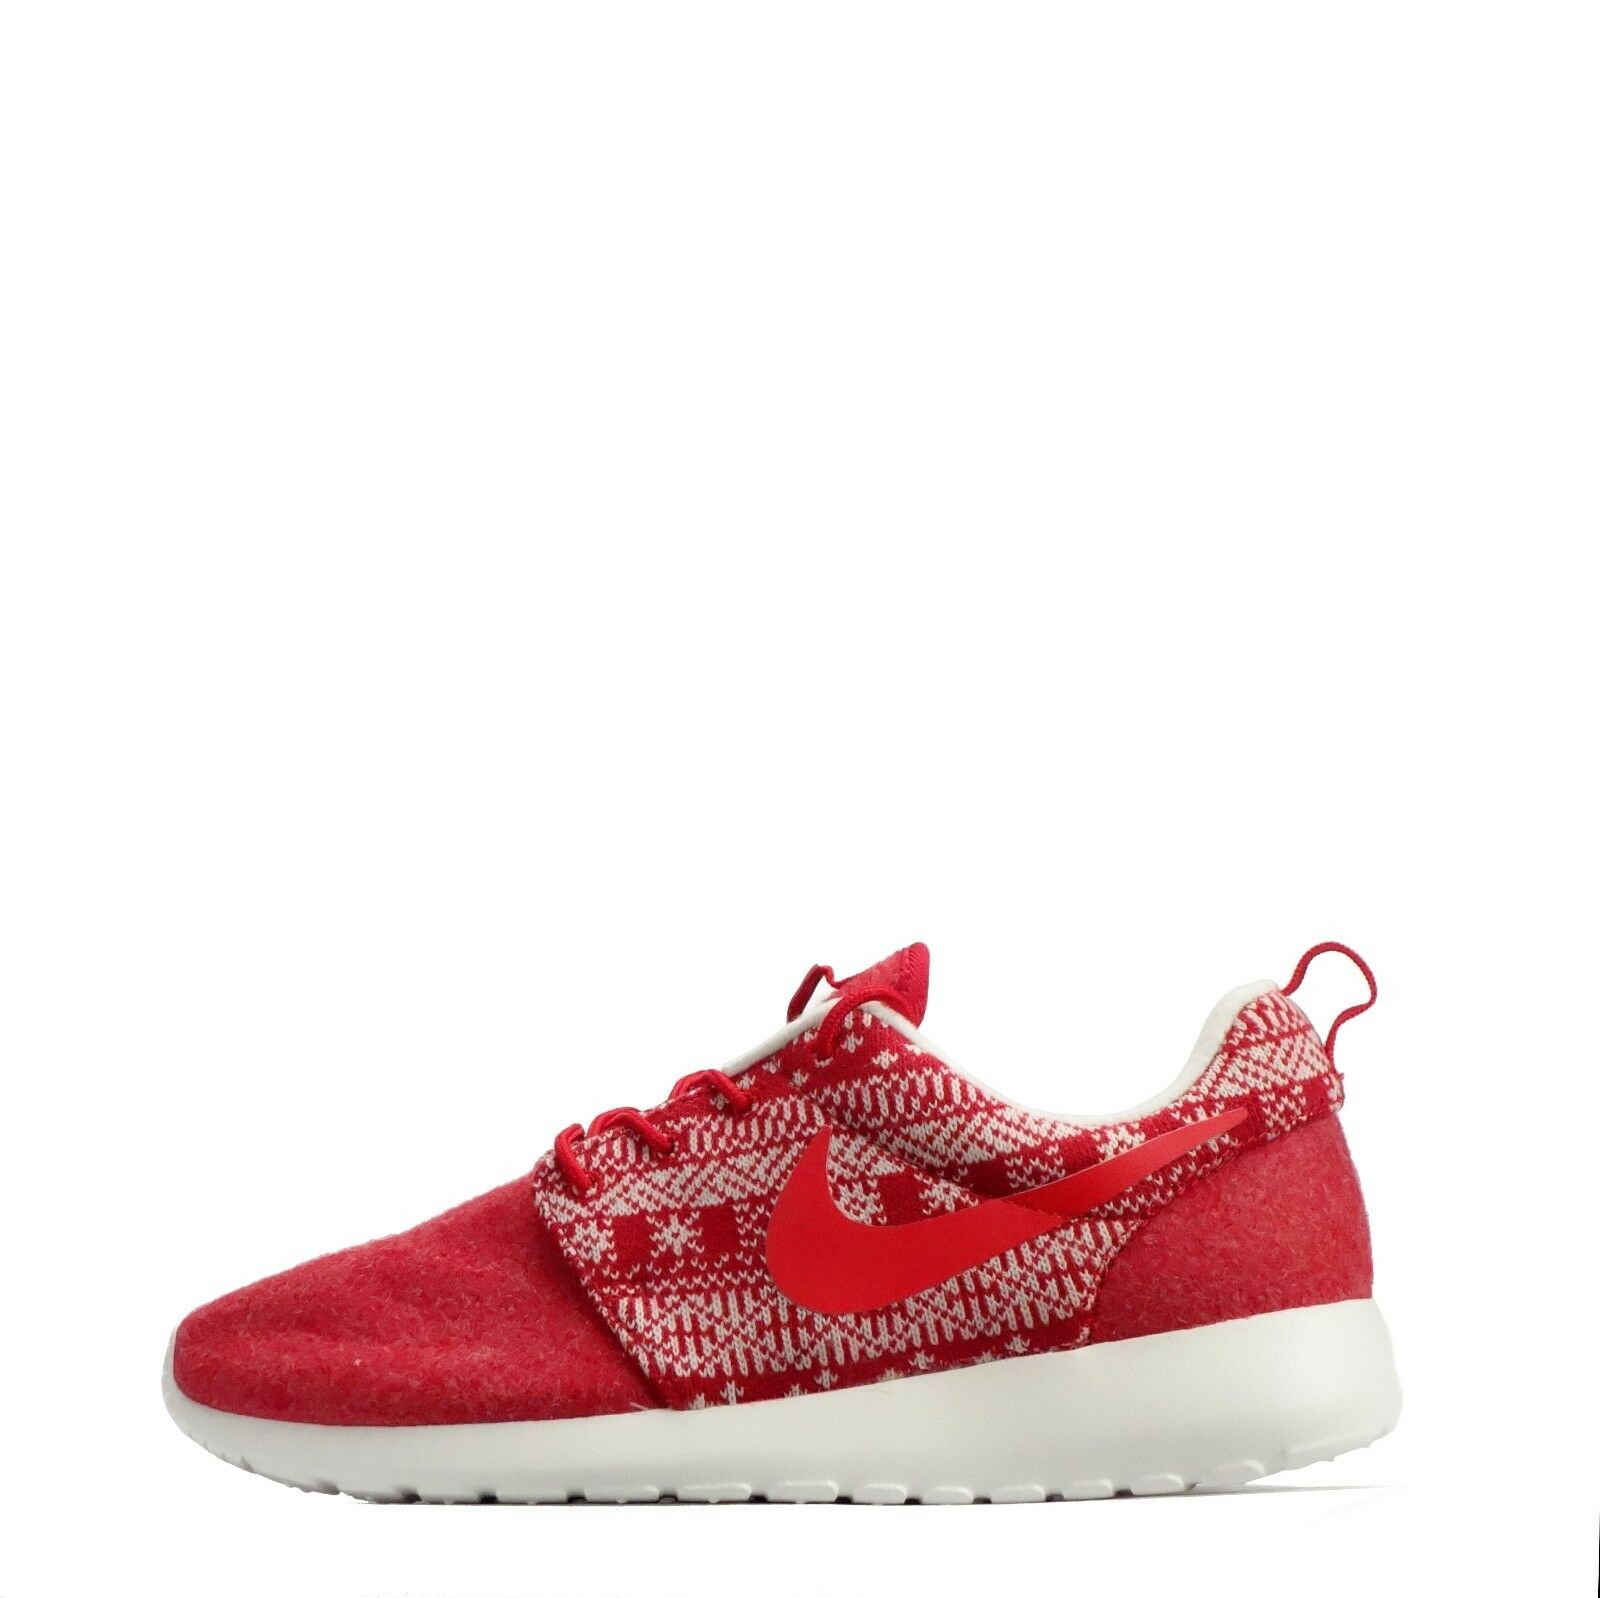 Nike Roshe One Style Winter Women's Casual Walking Style One Shoes in Red/Sail b5f511